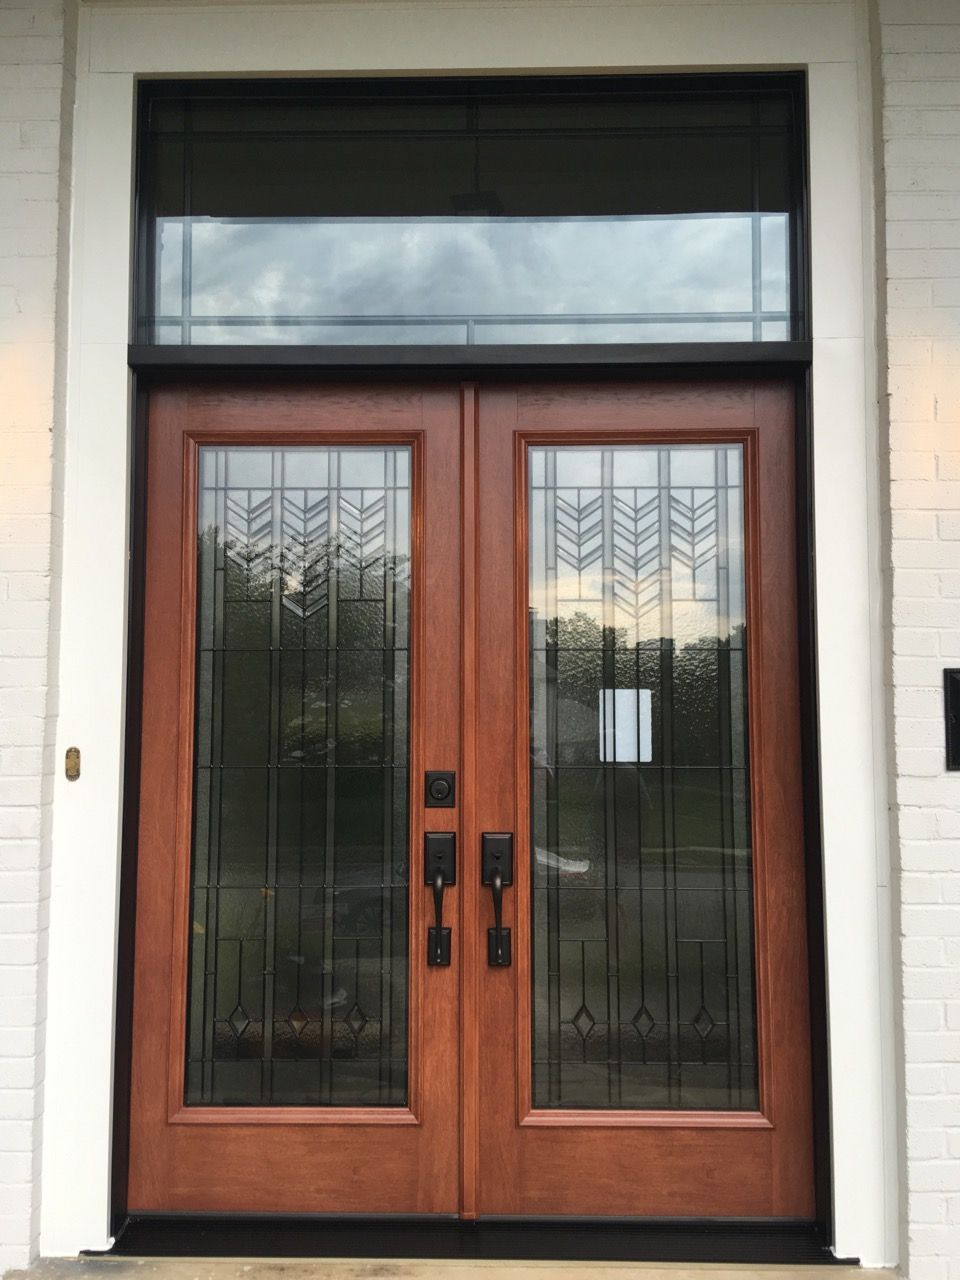 Provia Signet french entry doors with Barcelona glass and custom transom installed by Nova Exteriors in & Provia Signet french entry doors with Barcelona glass and custom ...